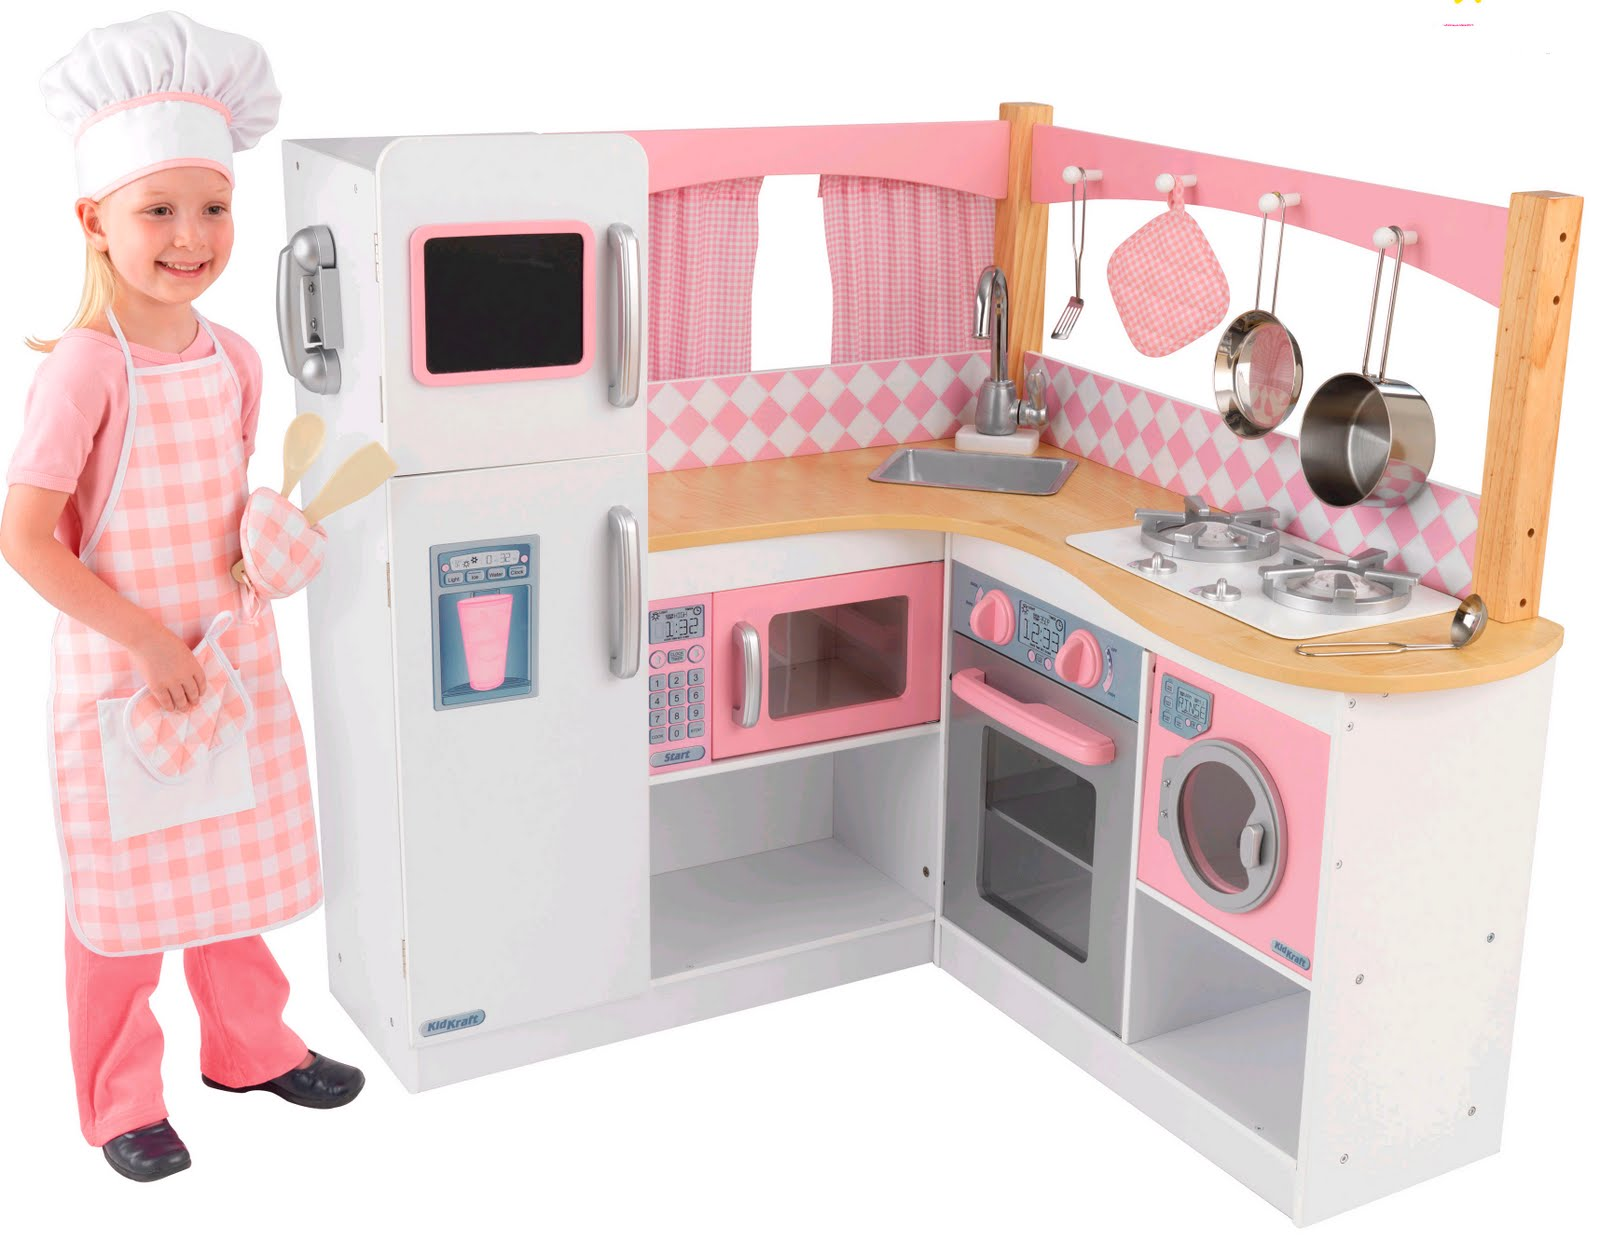 childrens wooden kitchen furniture nursery school wooden dra